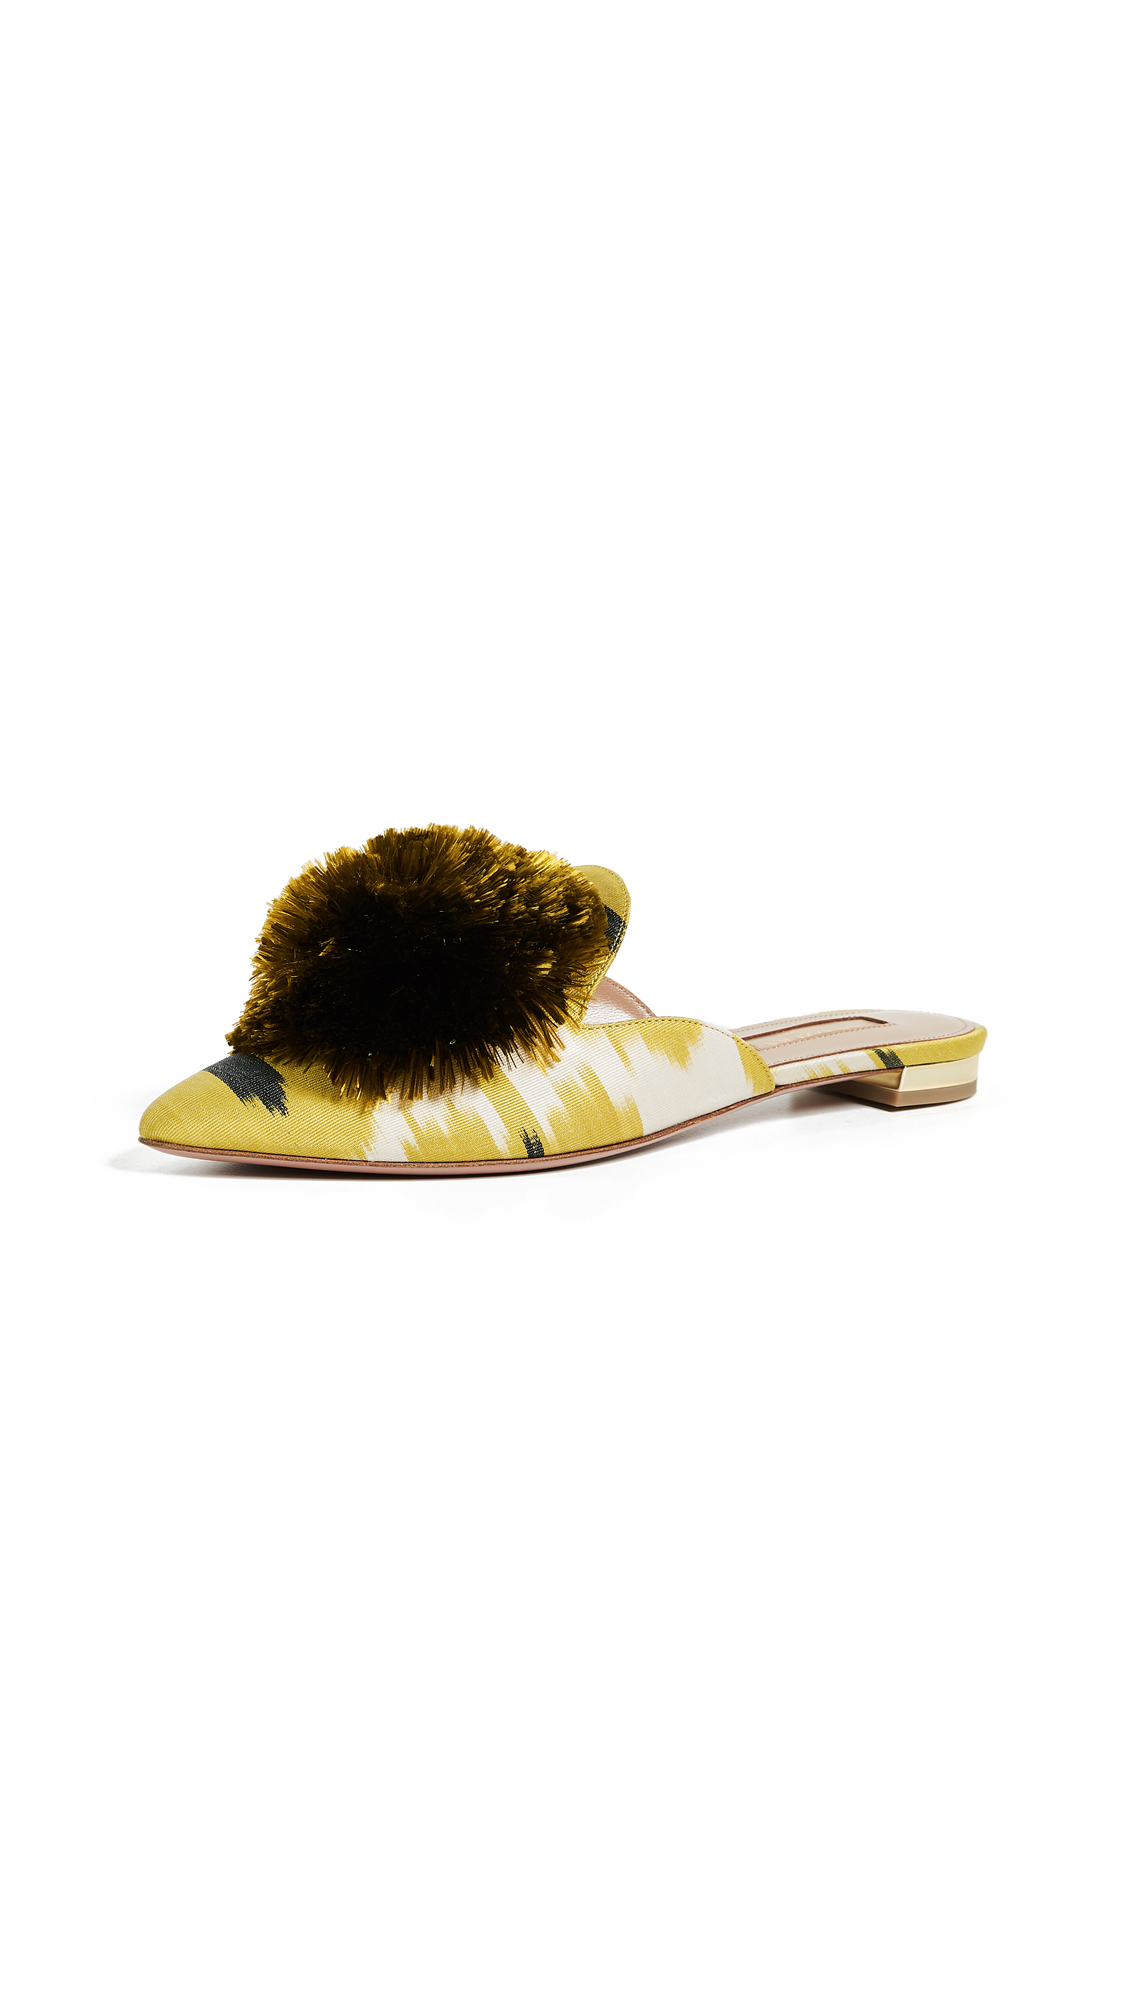 Aquazzura Powder Puff Flats - Lime